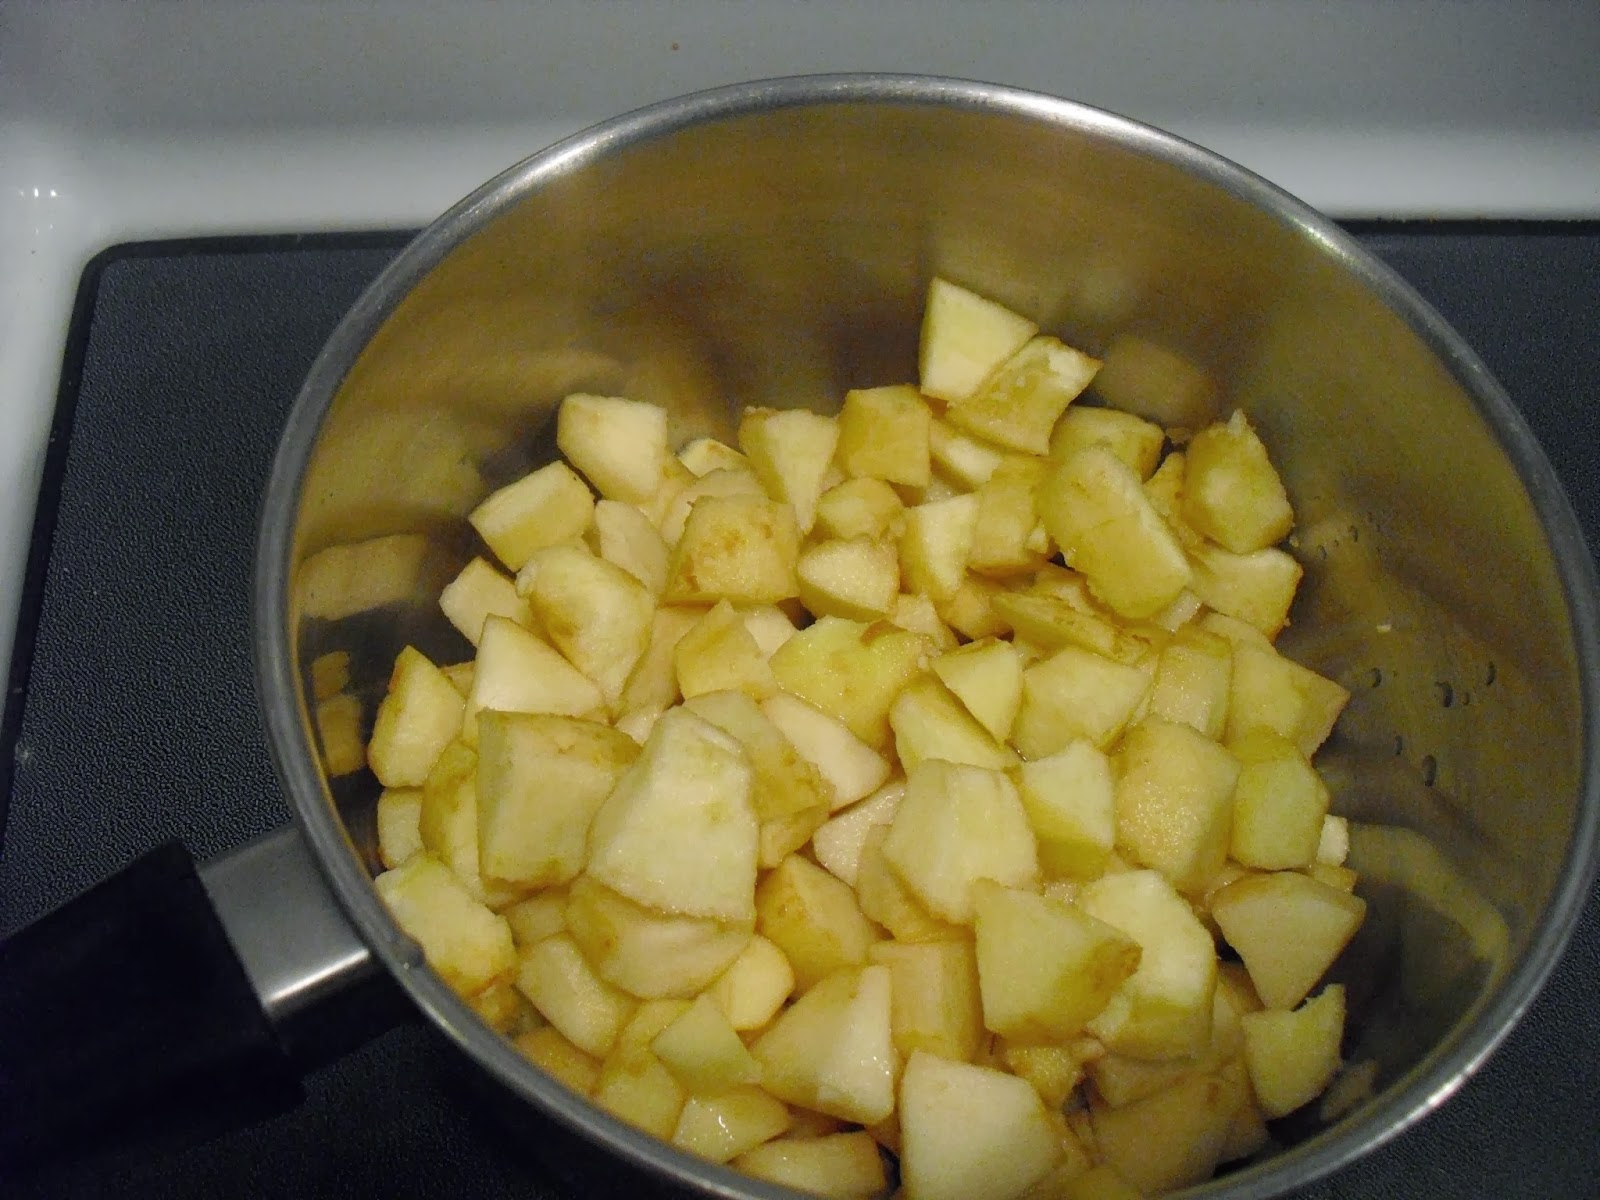 diced apples in pan